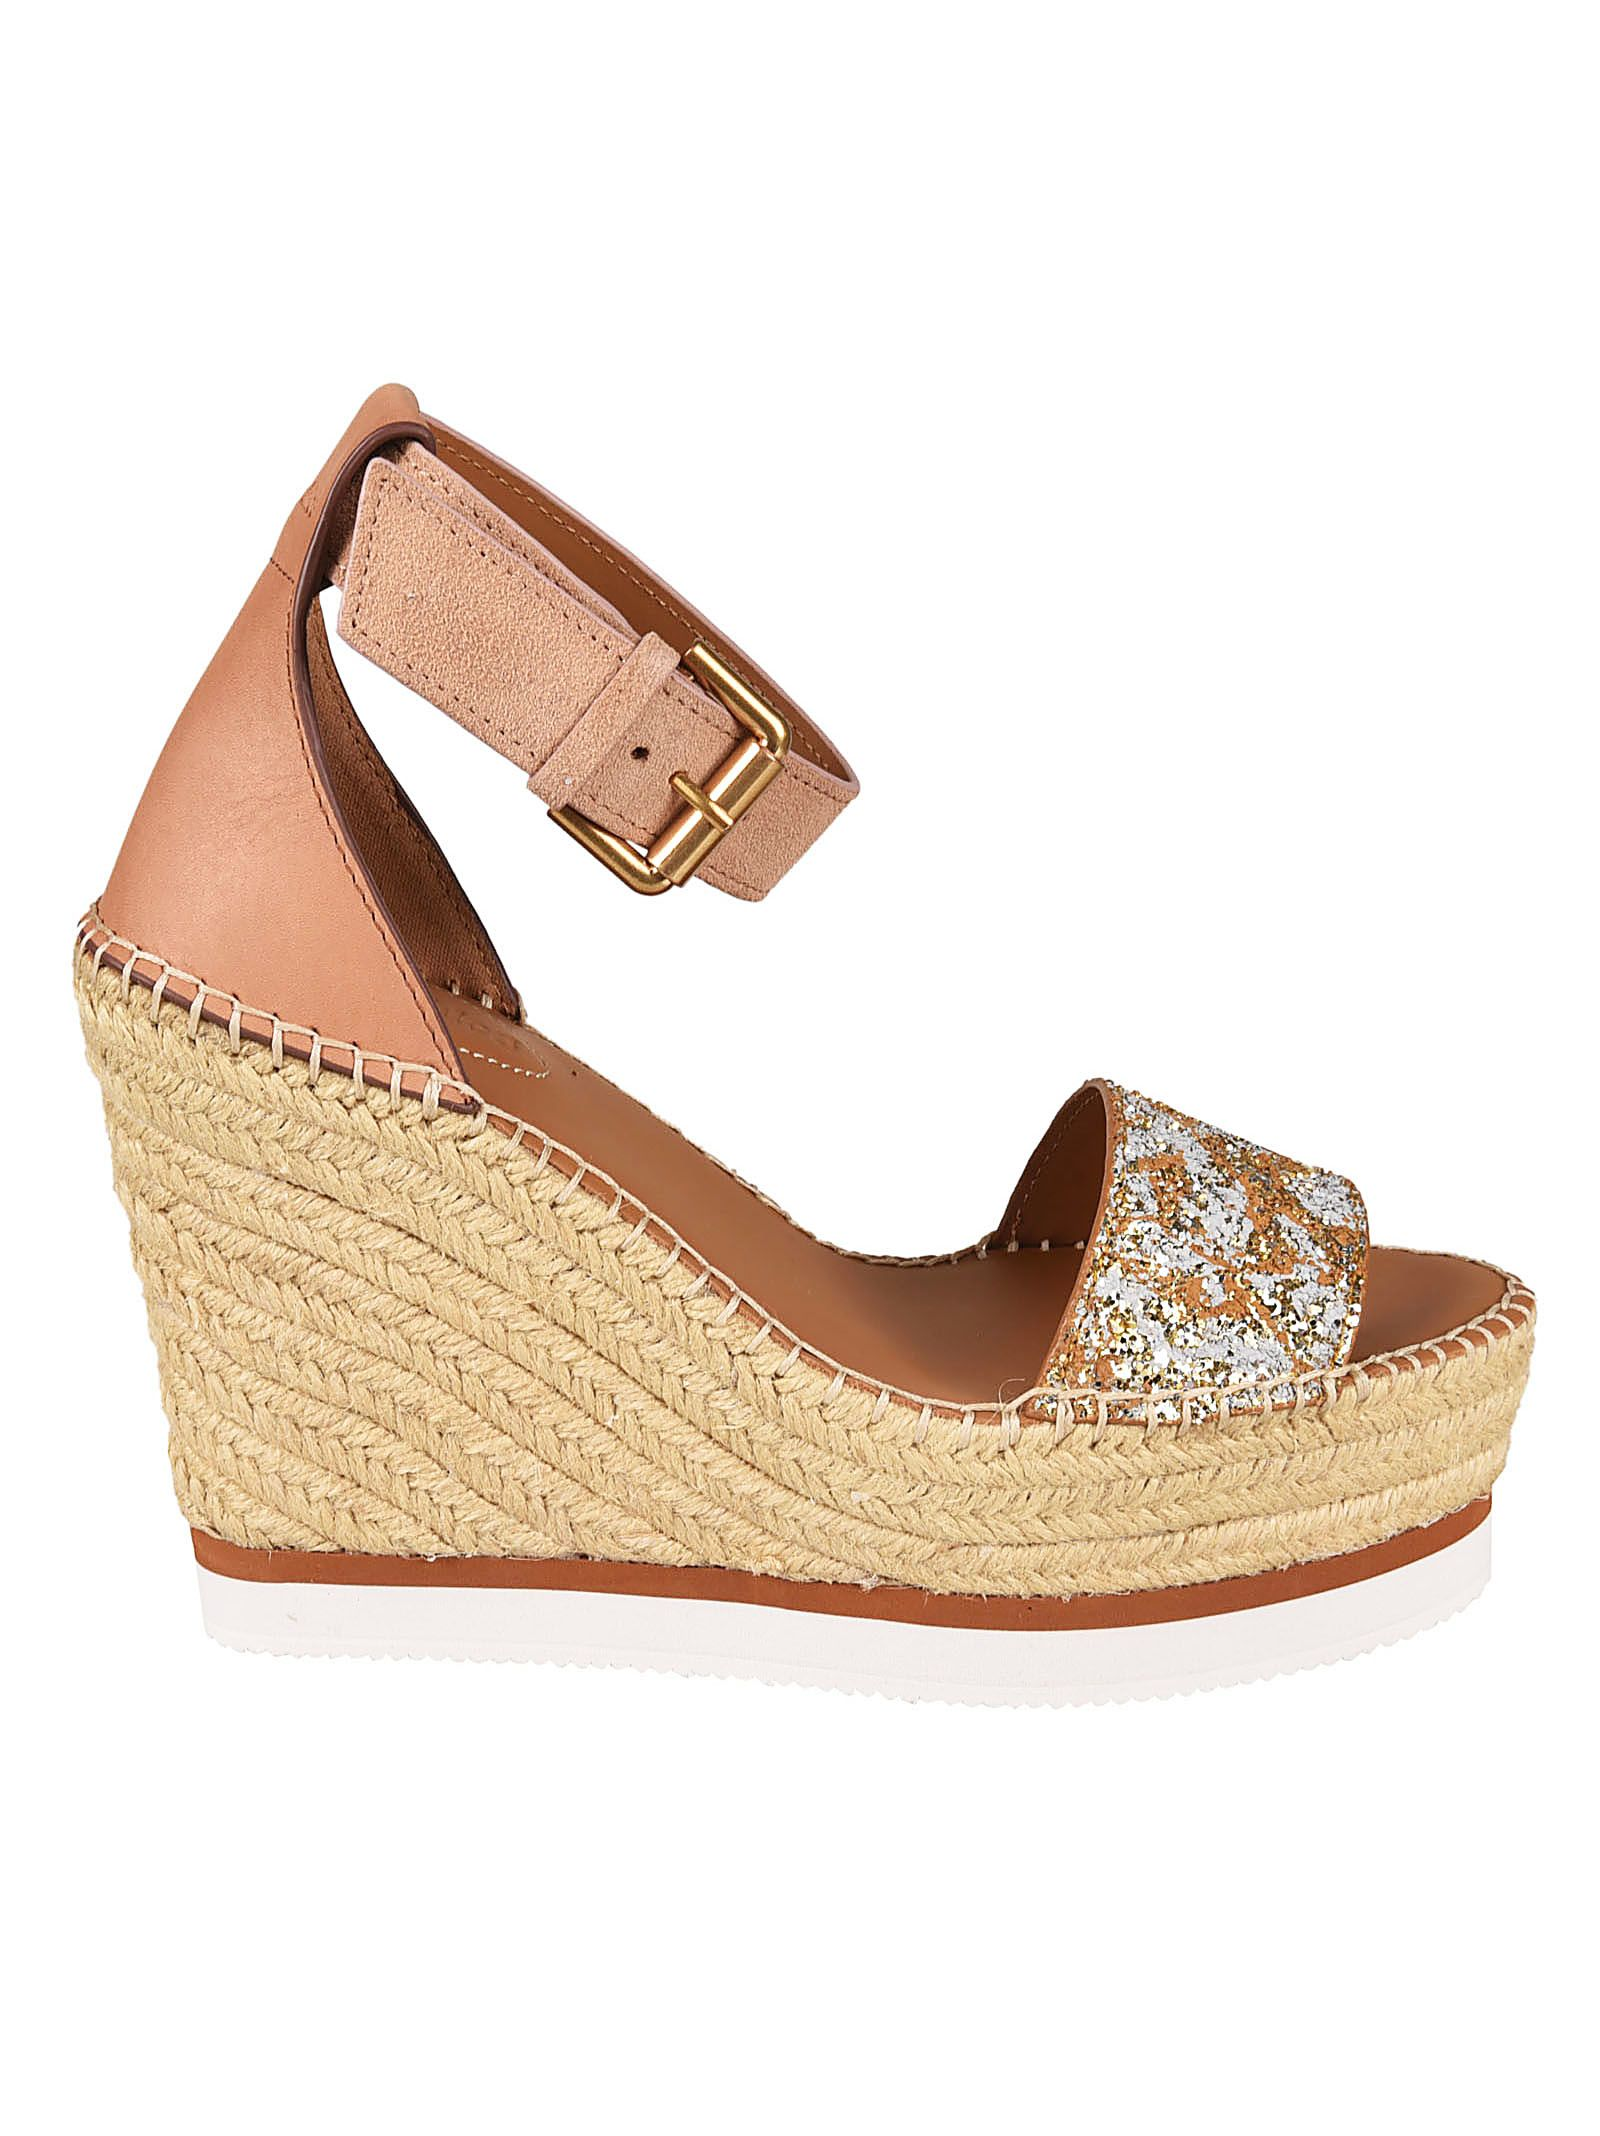 885caca9951 See by Chloé See By Chloé Braided Platform Sandals - Beige ...